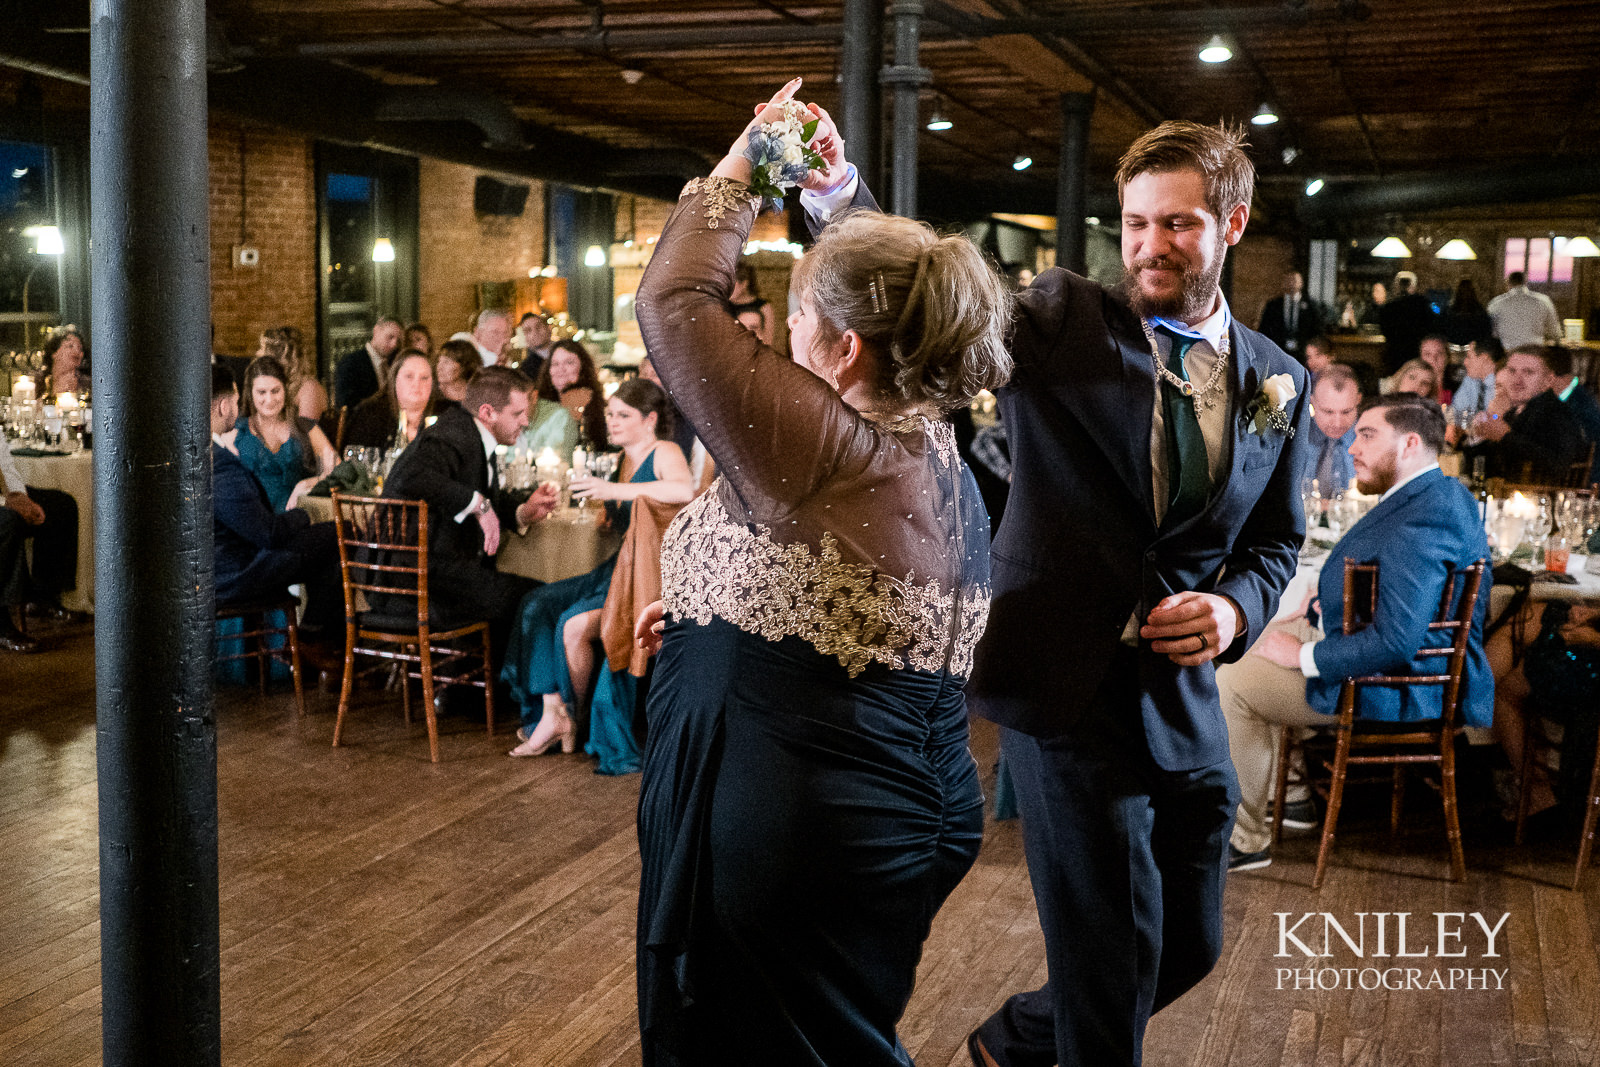 54-Pearl-St-Grill-Wedding-Reception-Buffalo-NY-Kniley-Photography.jpg